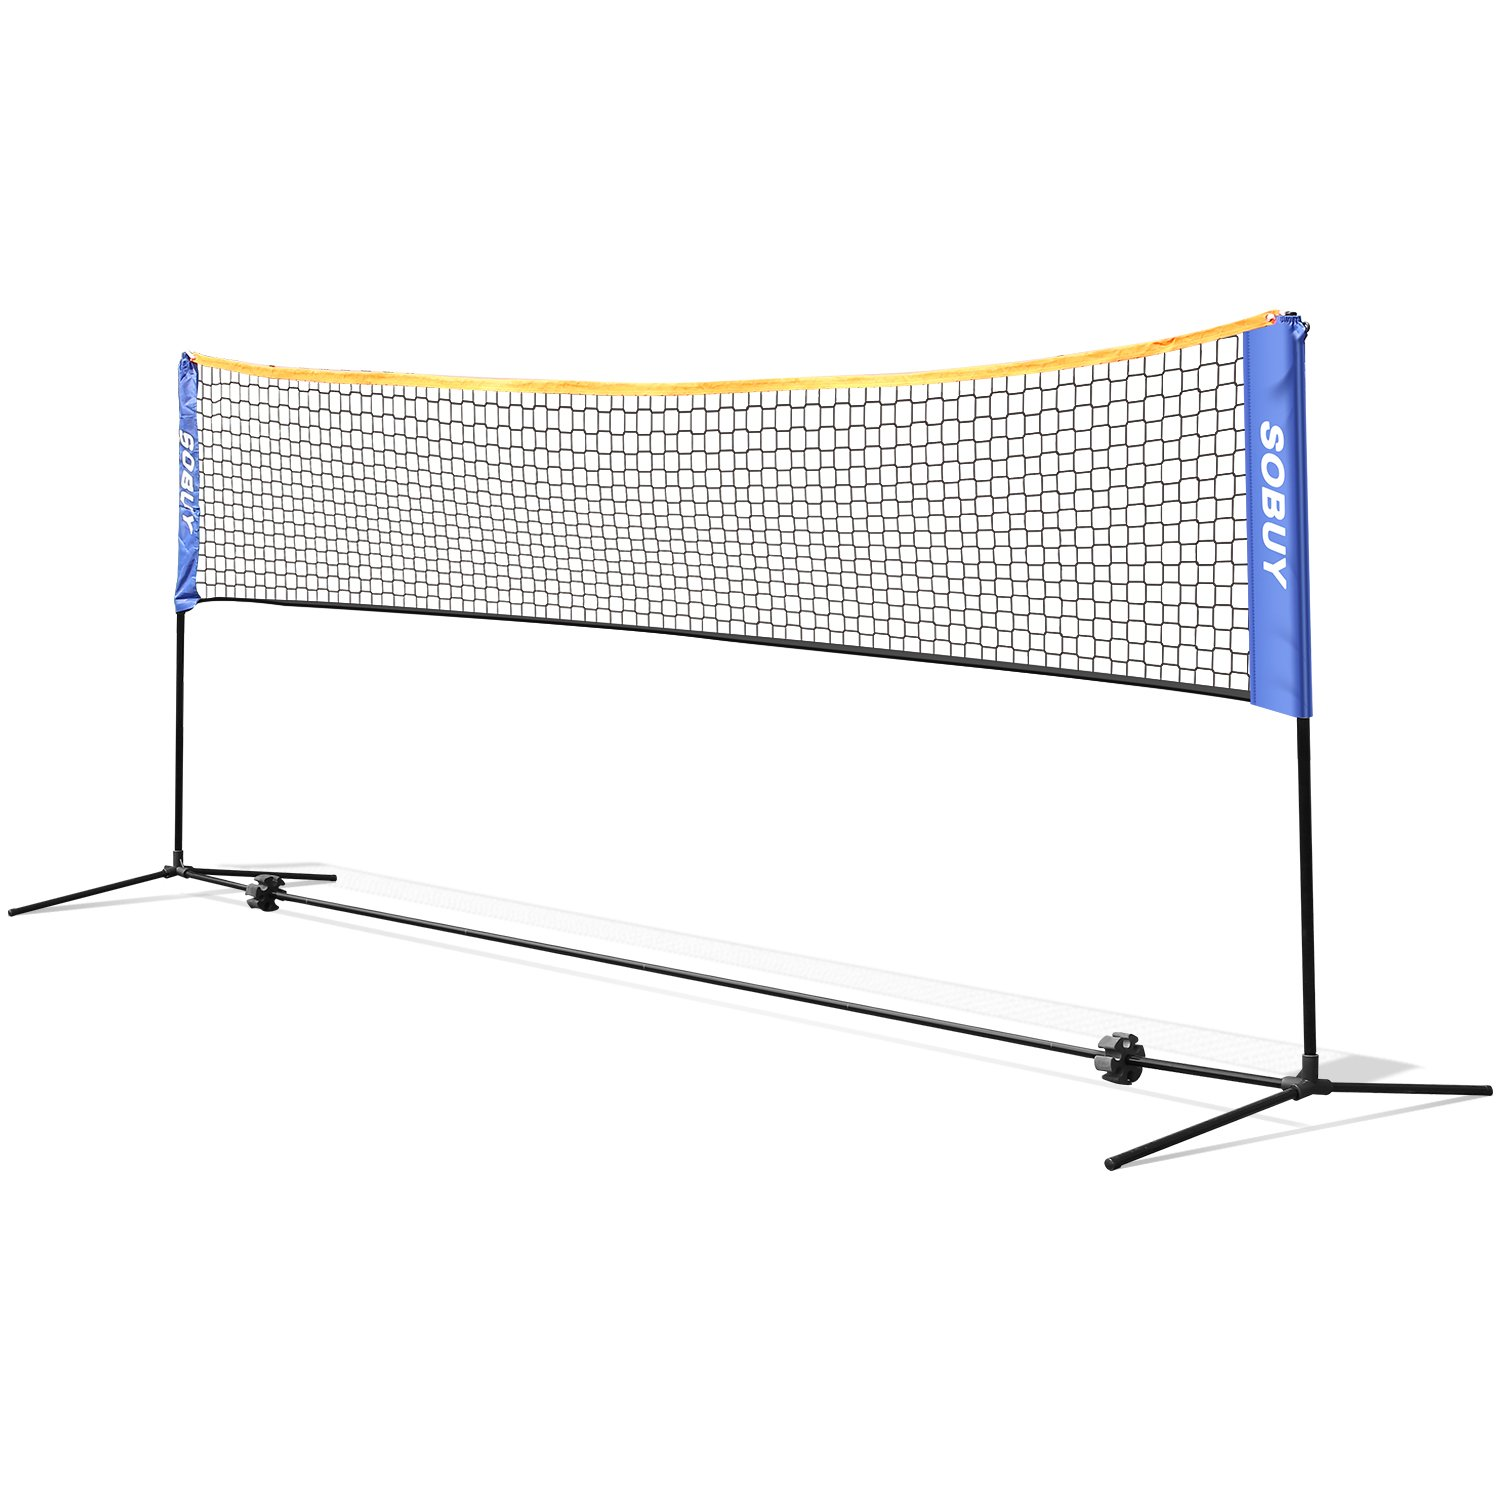 FEMOR Portable Badminton Tennis Combo Set, Height Adjustable Net Stand with Carrying Bag and Accessories for Family Sport Outdoor Games